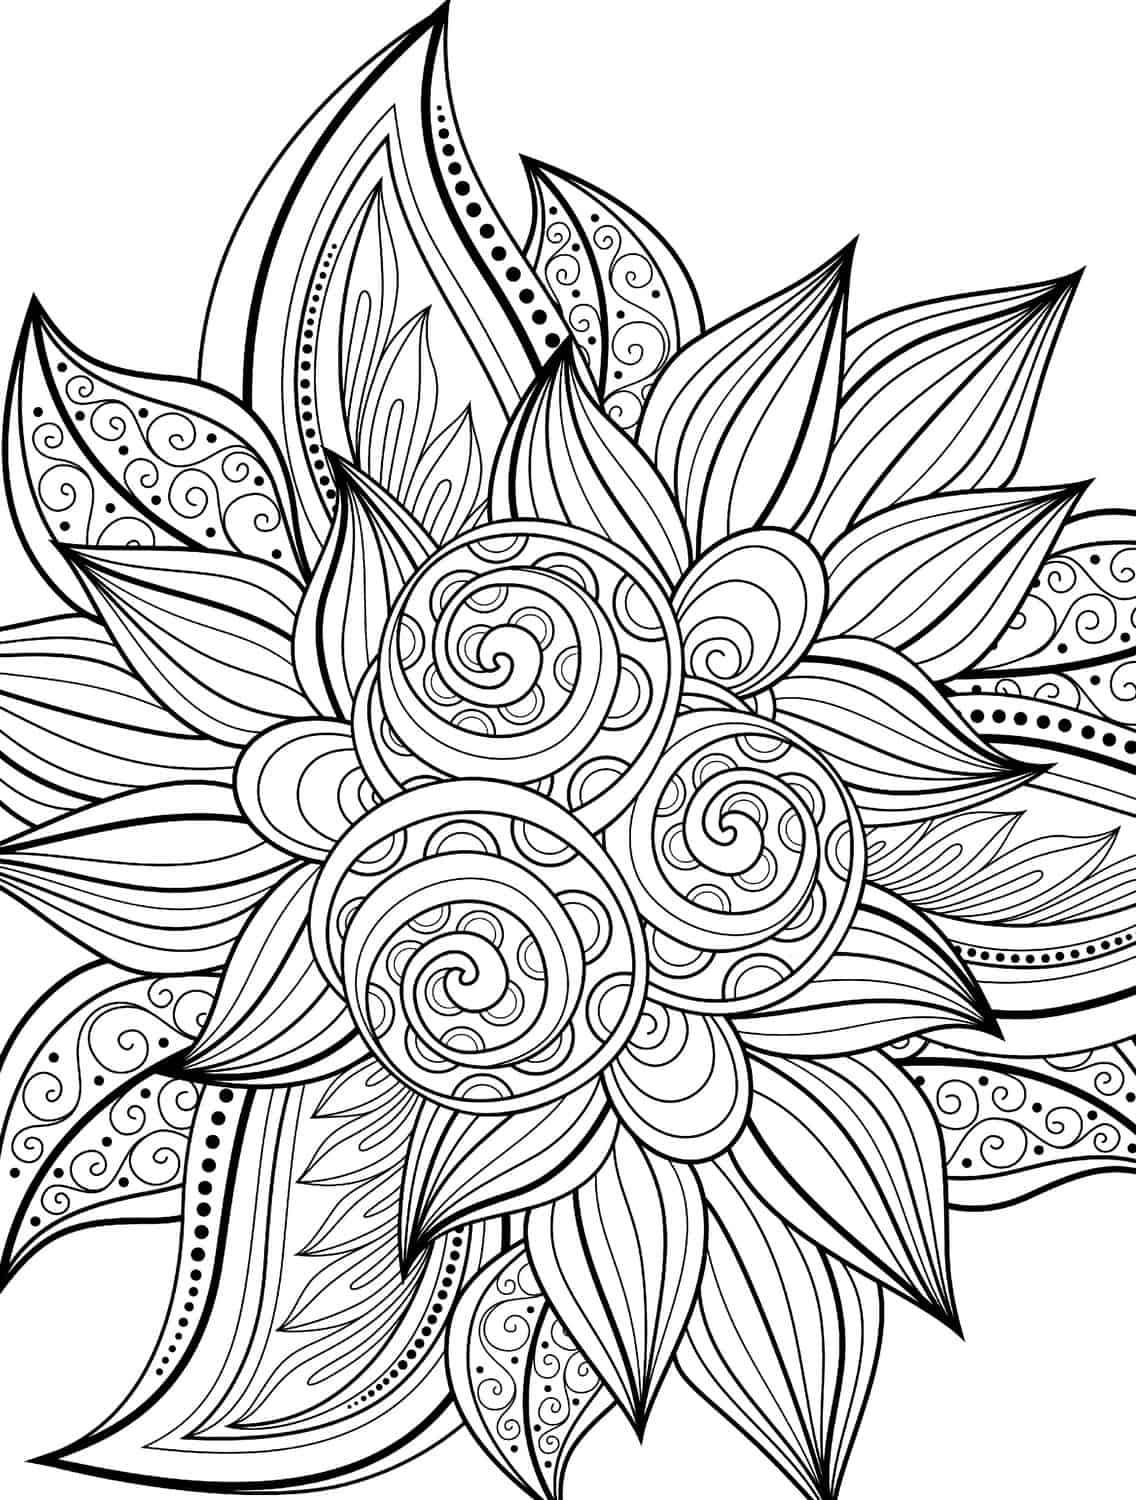 coloring pages adults 19 of the best adult colouring pages free printables for pages adults coloring